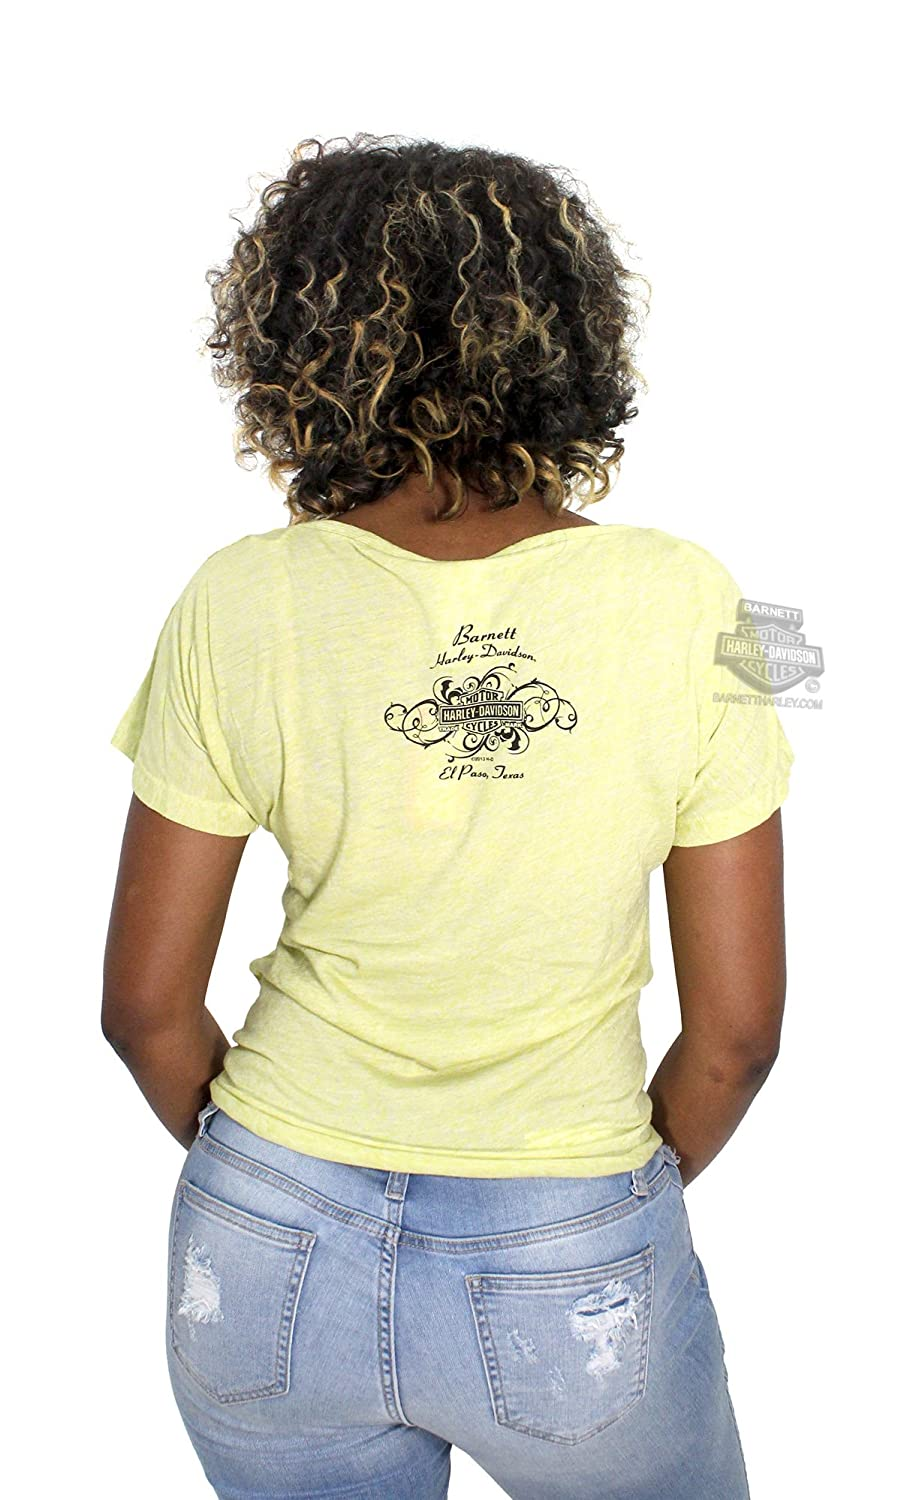 ee28f805aa3 Harley-Davidson Womens All Real B&S Dolman with Tie-Front Short Sleeve T- Shirt (Small) at Amazon Women's Clothing store: